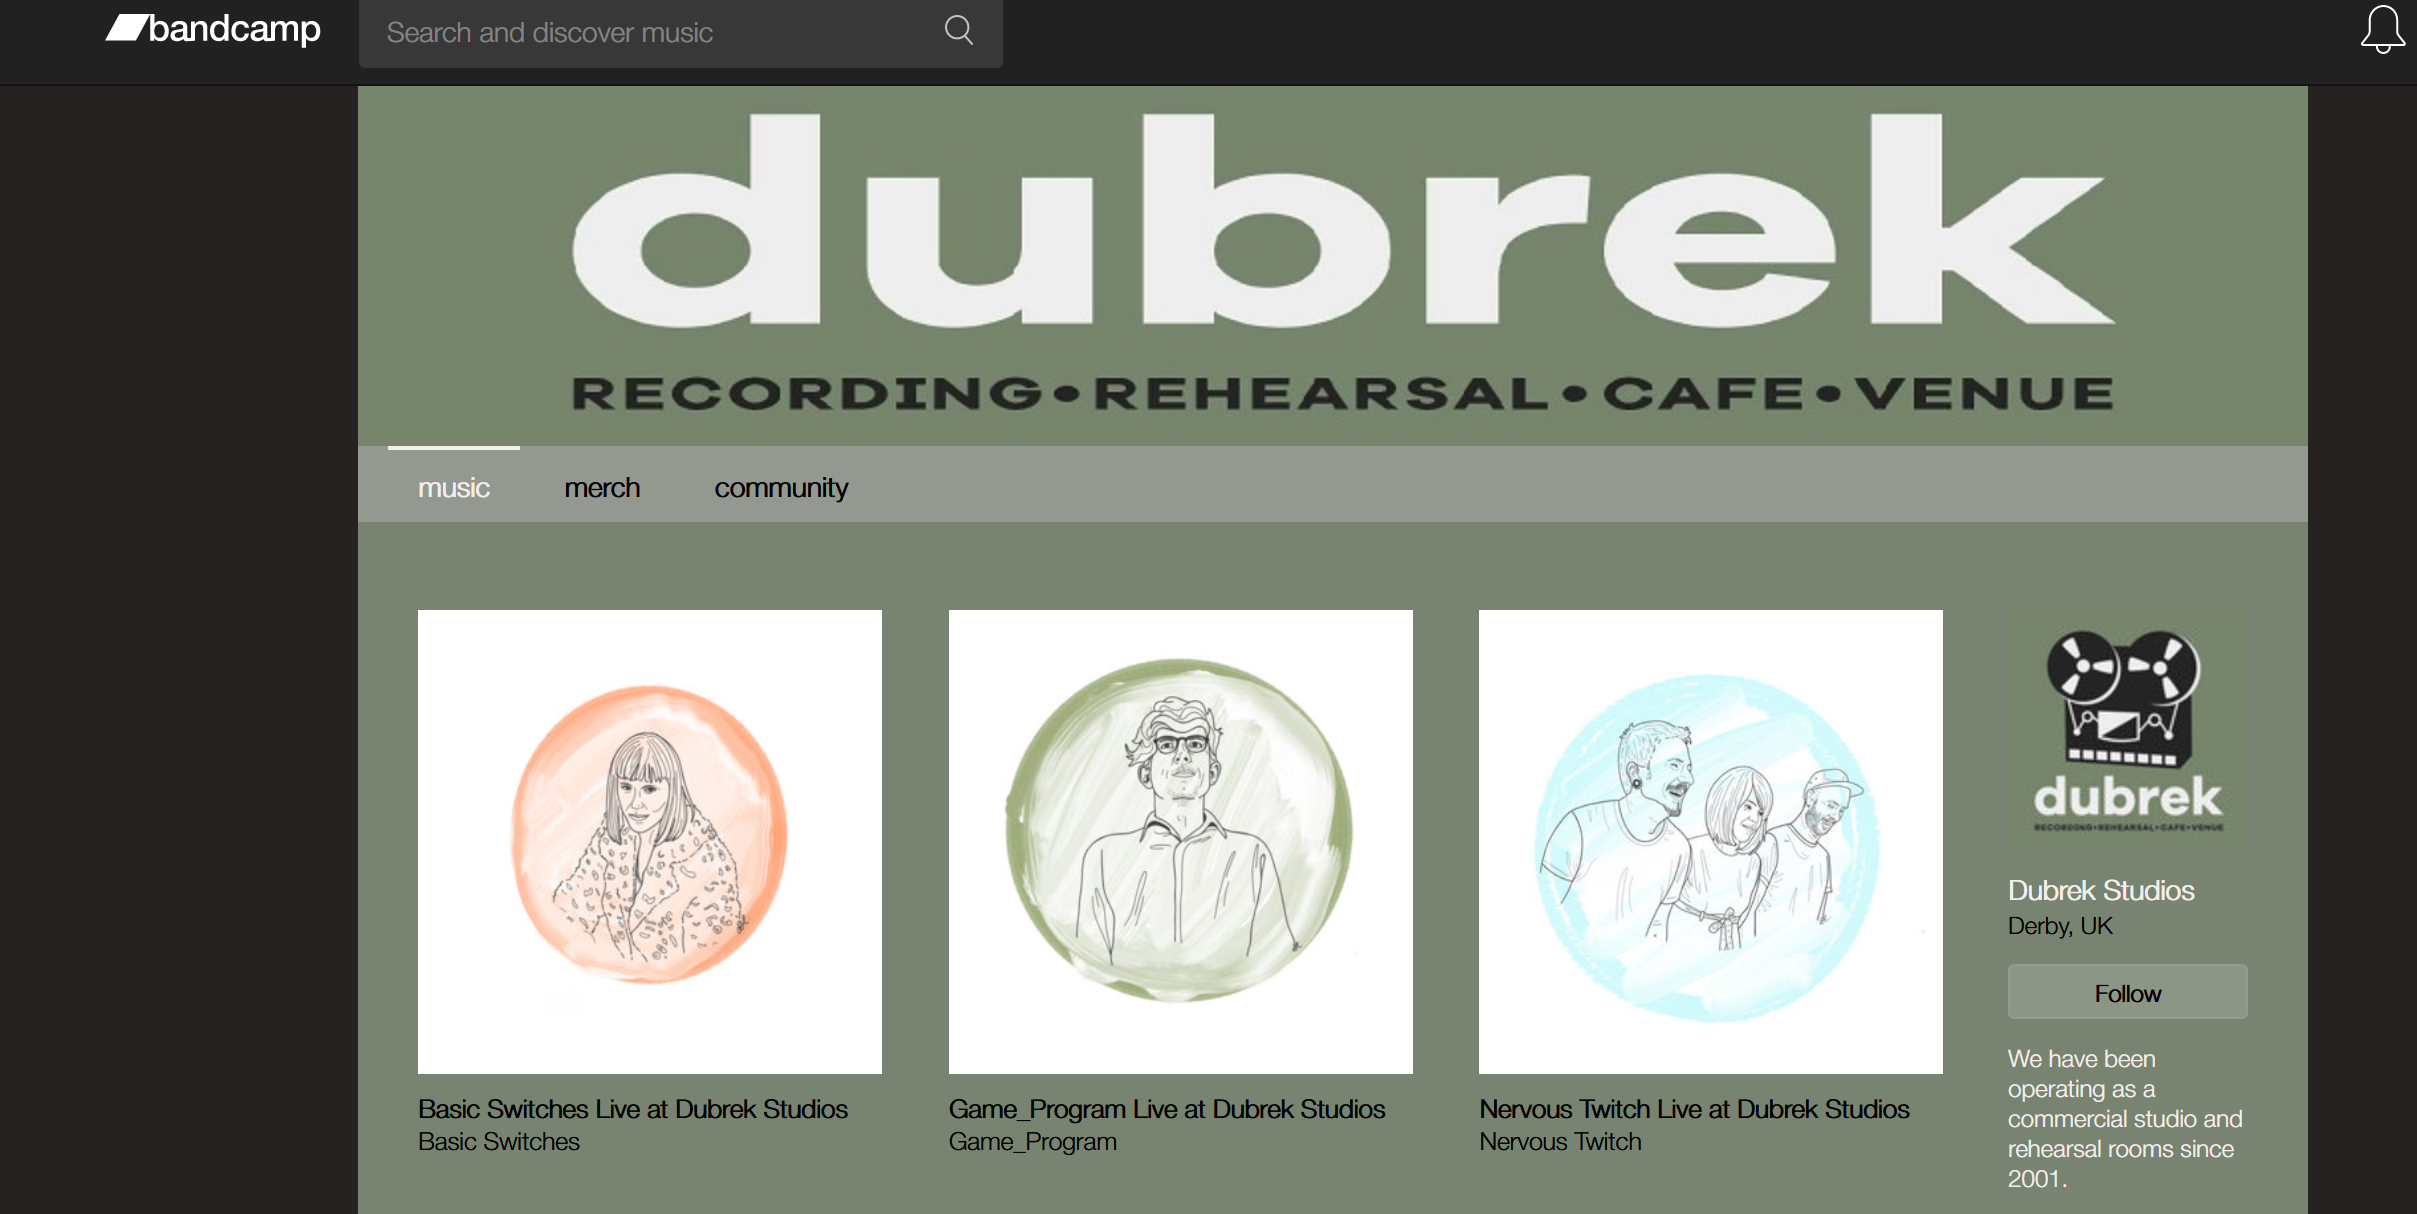 Check out our Bandcamp archive!